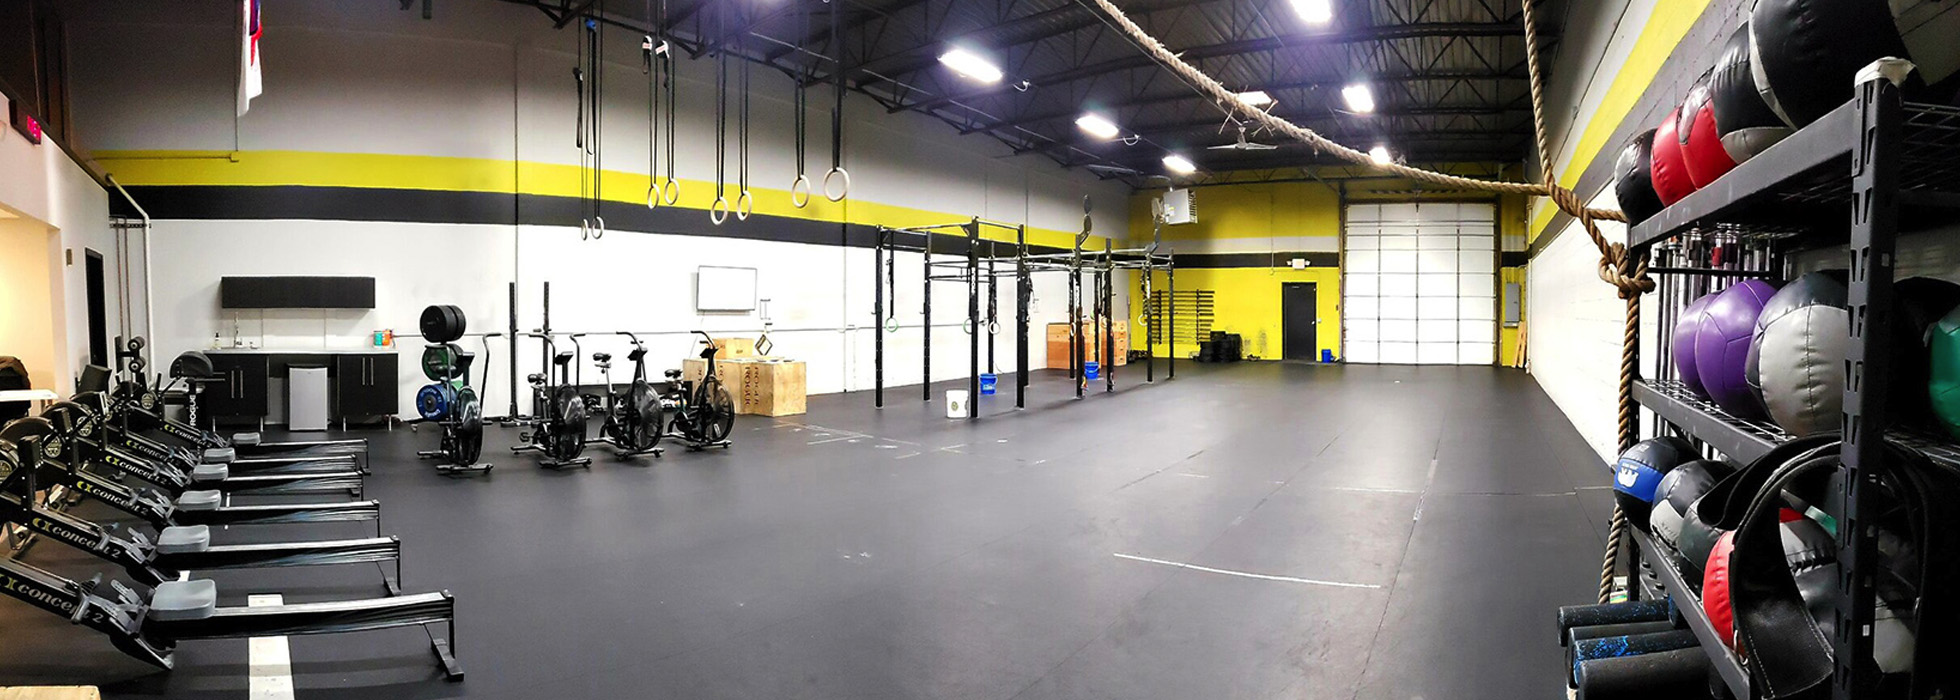 Top 5 Best Gyms To Join near Royal Oak MI, Top 5 Best Gyms To Join near Berkley MI, Top 5 Best Gyms To Join near Ferndale MI, Top 5 Best Gyms To Join near Birmingham MI, Top 5 Best Gyms To Join near Troy MI, Top 5 Best Gyms To Join near Hazel Park MI, Top 5 Best Gyms To Join near Oak Park MI, Top 5 Best Gyms To Join near Southfield MI, Top 5 Best Gyms To Join near Madison Heights MI